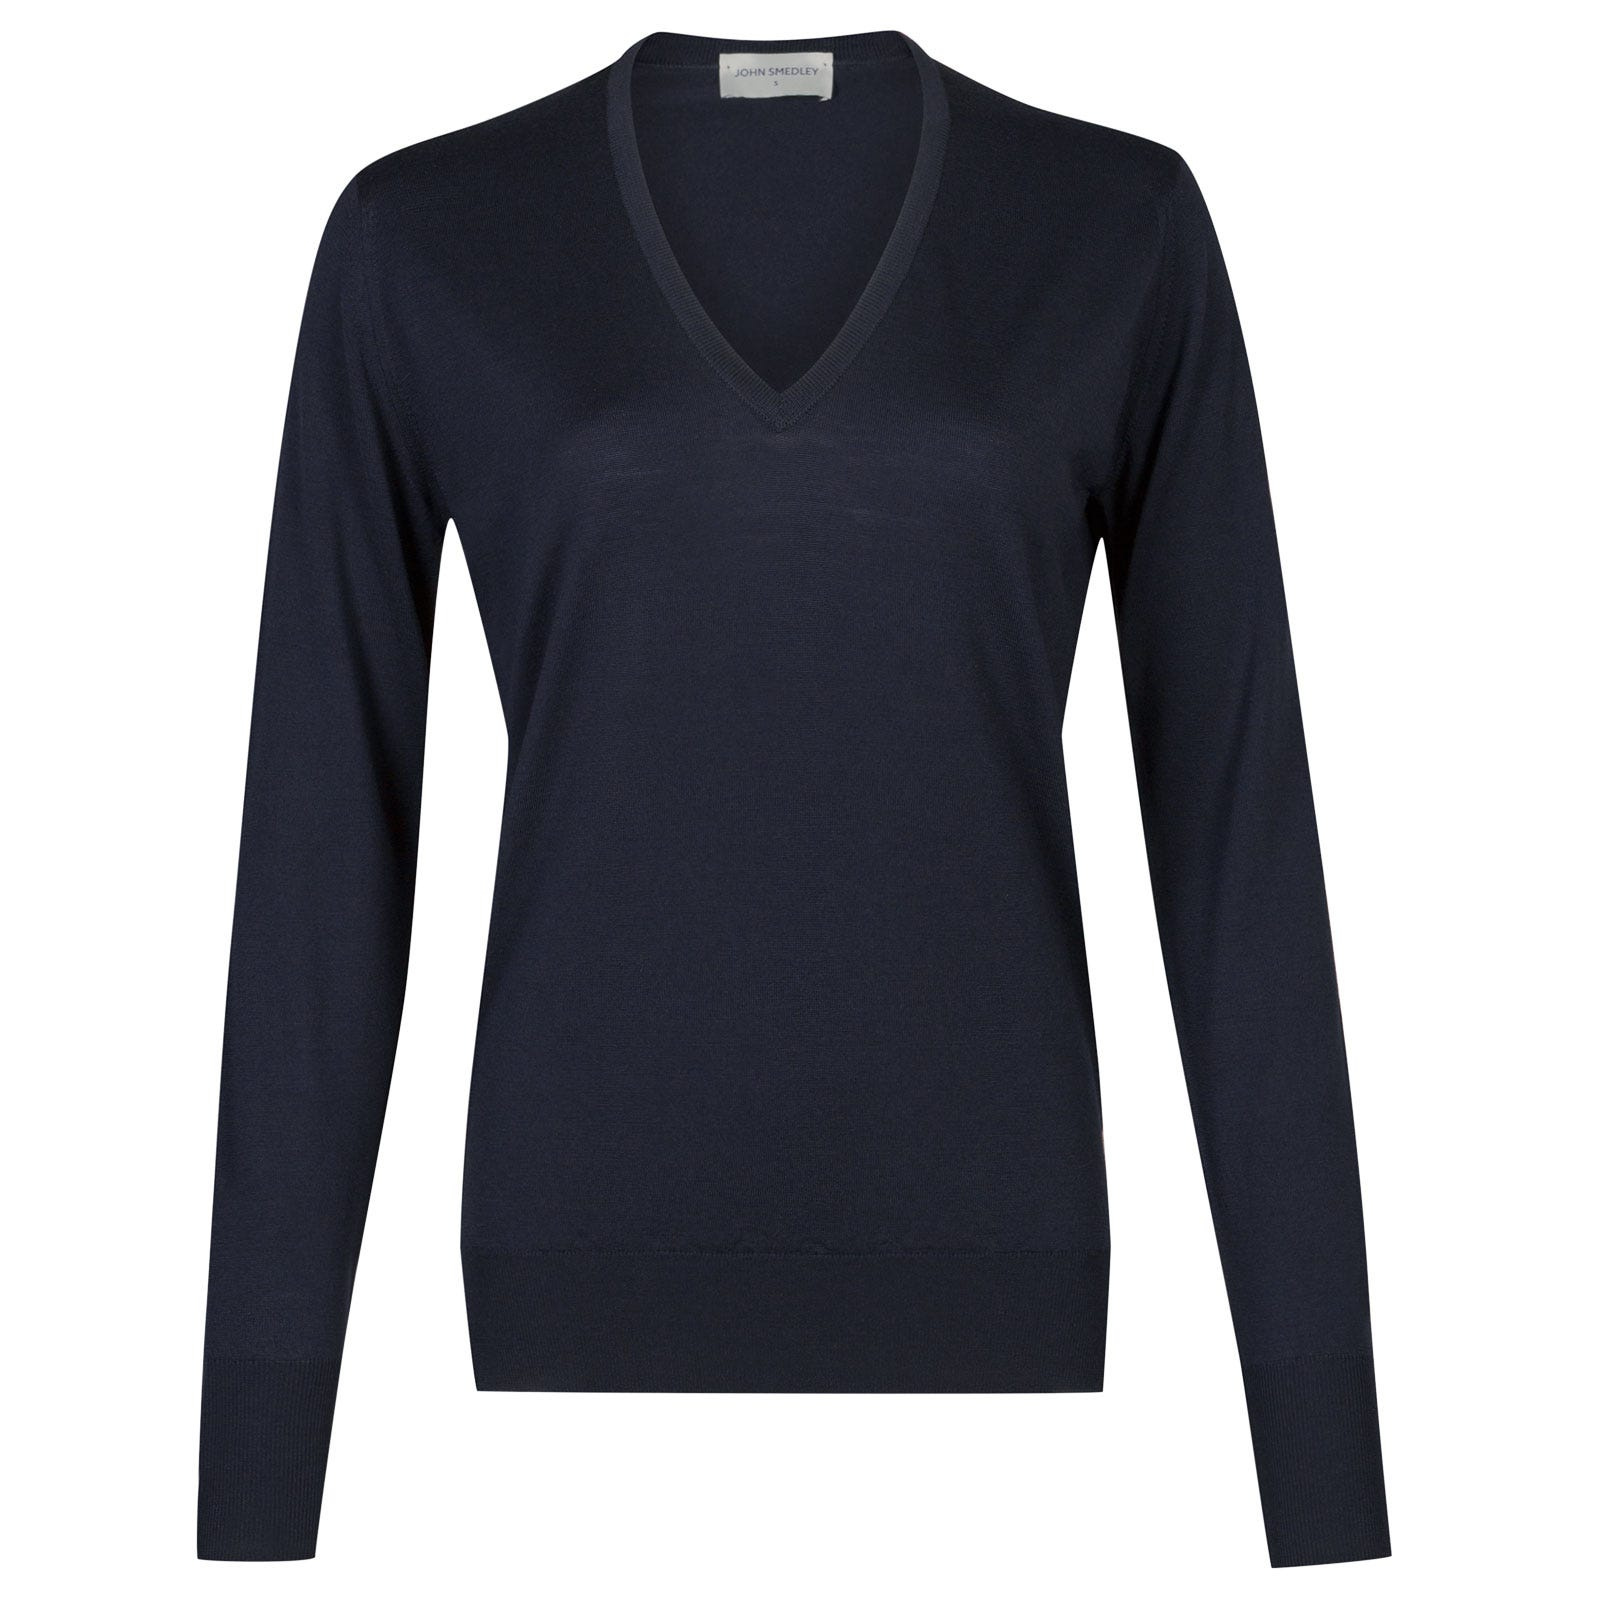 John Smedley Pepin Merino Wool Sweater in Midnight-L